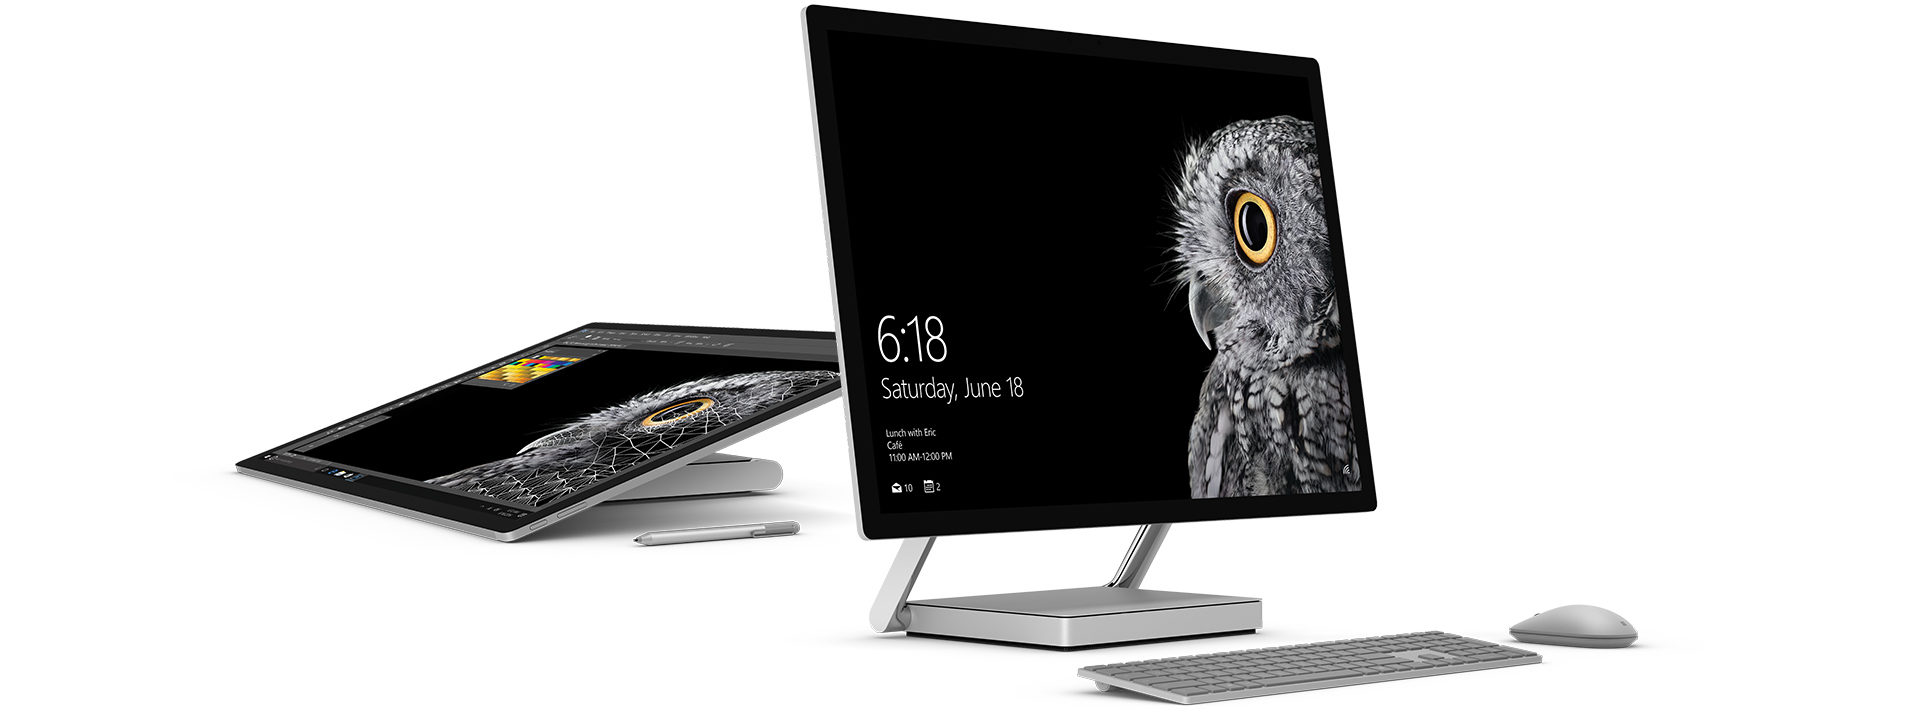 Surface Studio Overview 2 HeroFullBleed V1 1920x720 image